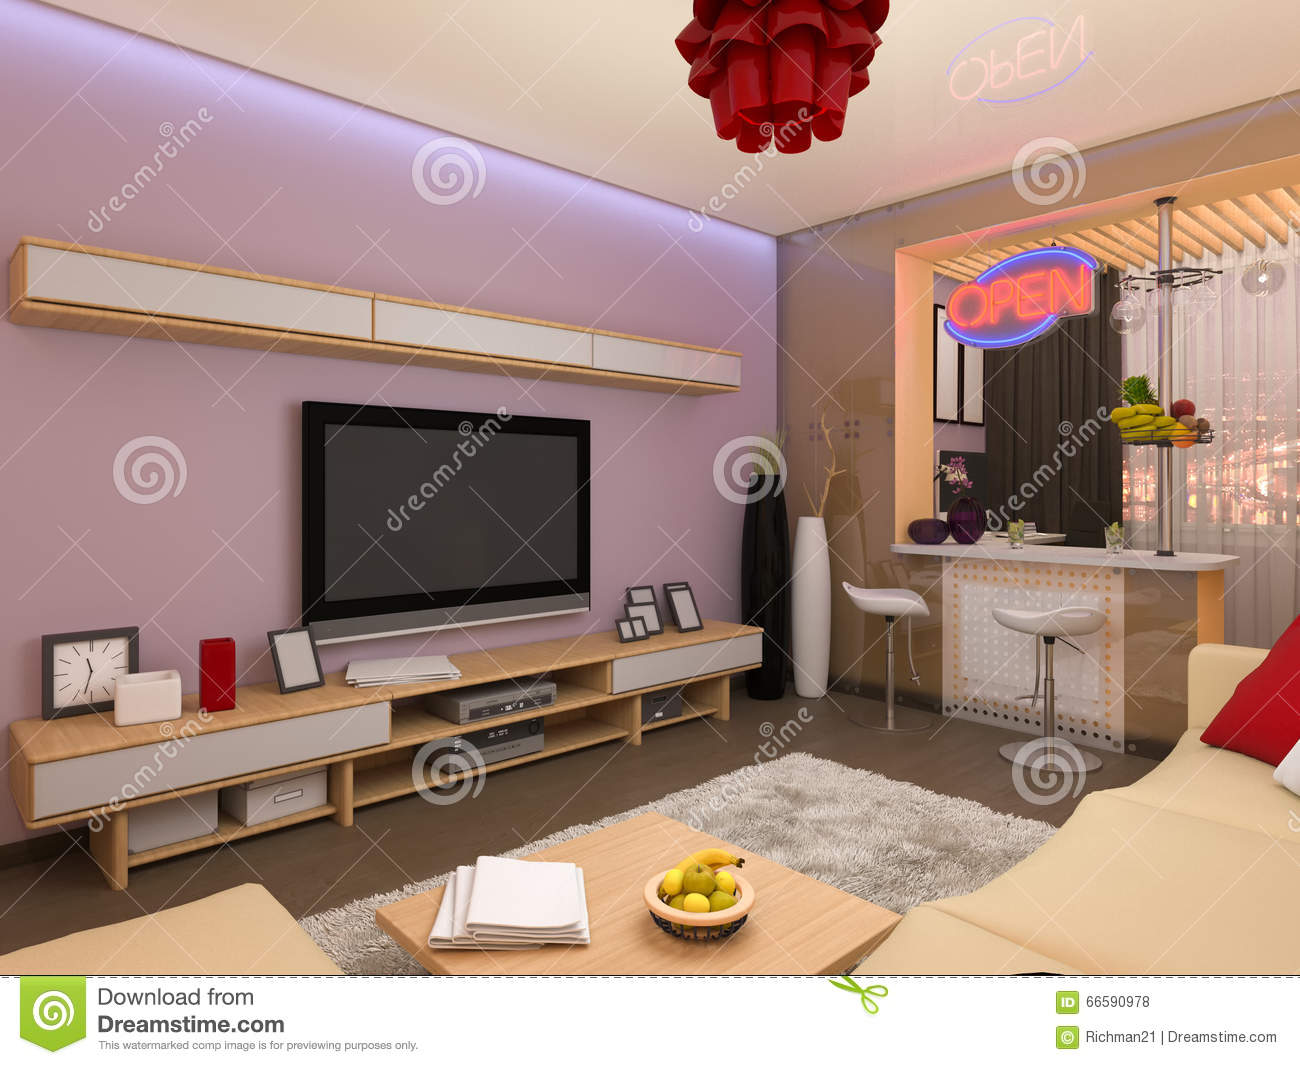 3d Render Of The Interior Design Of The Living Room In A